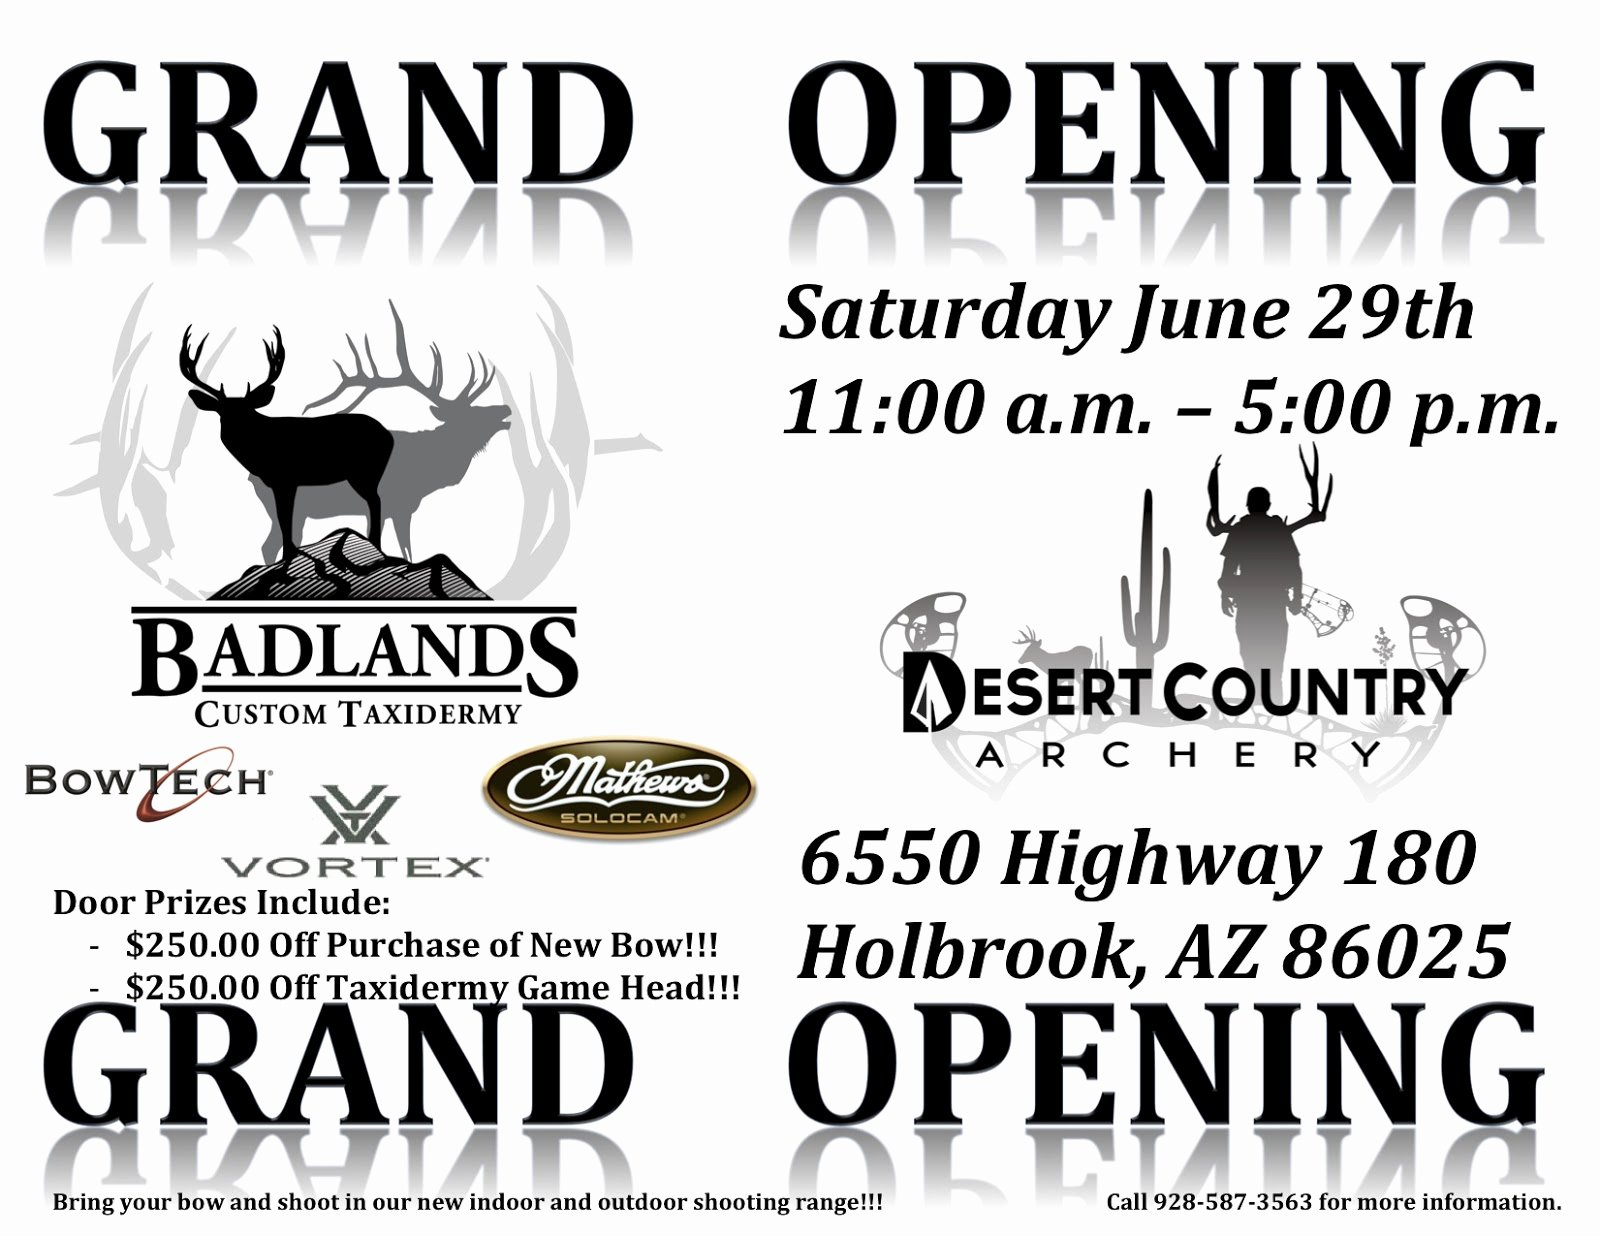 Grand Opening Flyer Template Fresh Badlands Custom Taxidermy Desert Country Archery Grand Opening